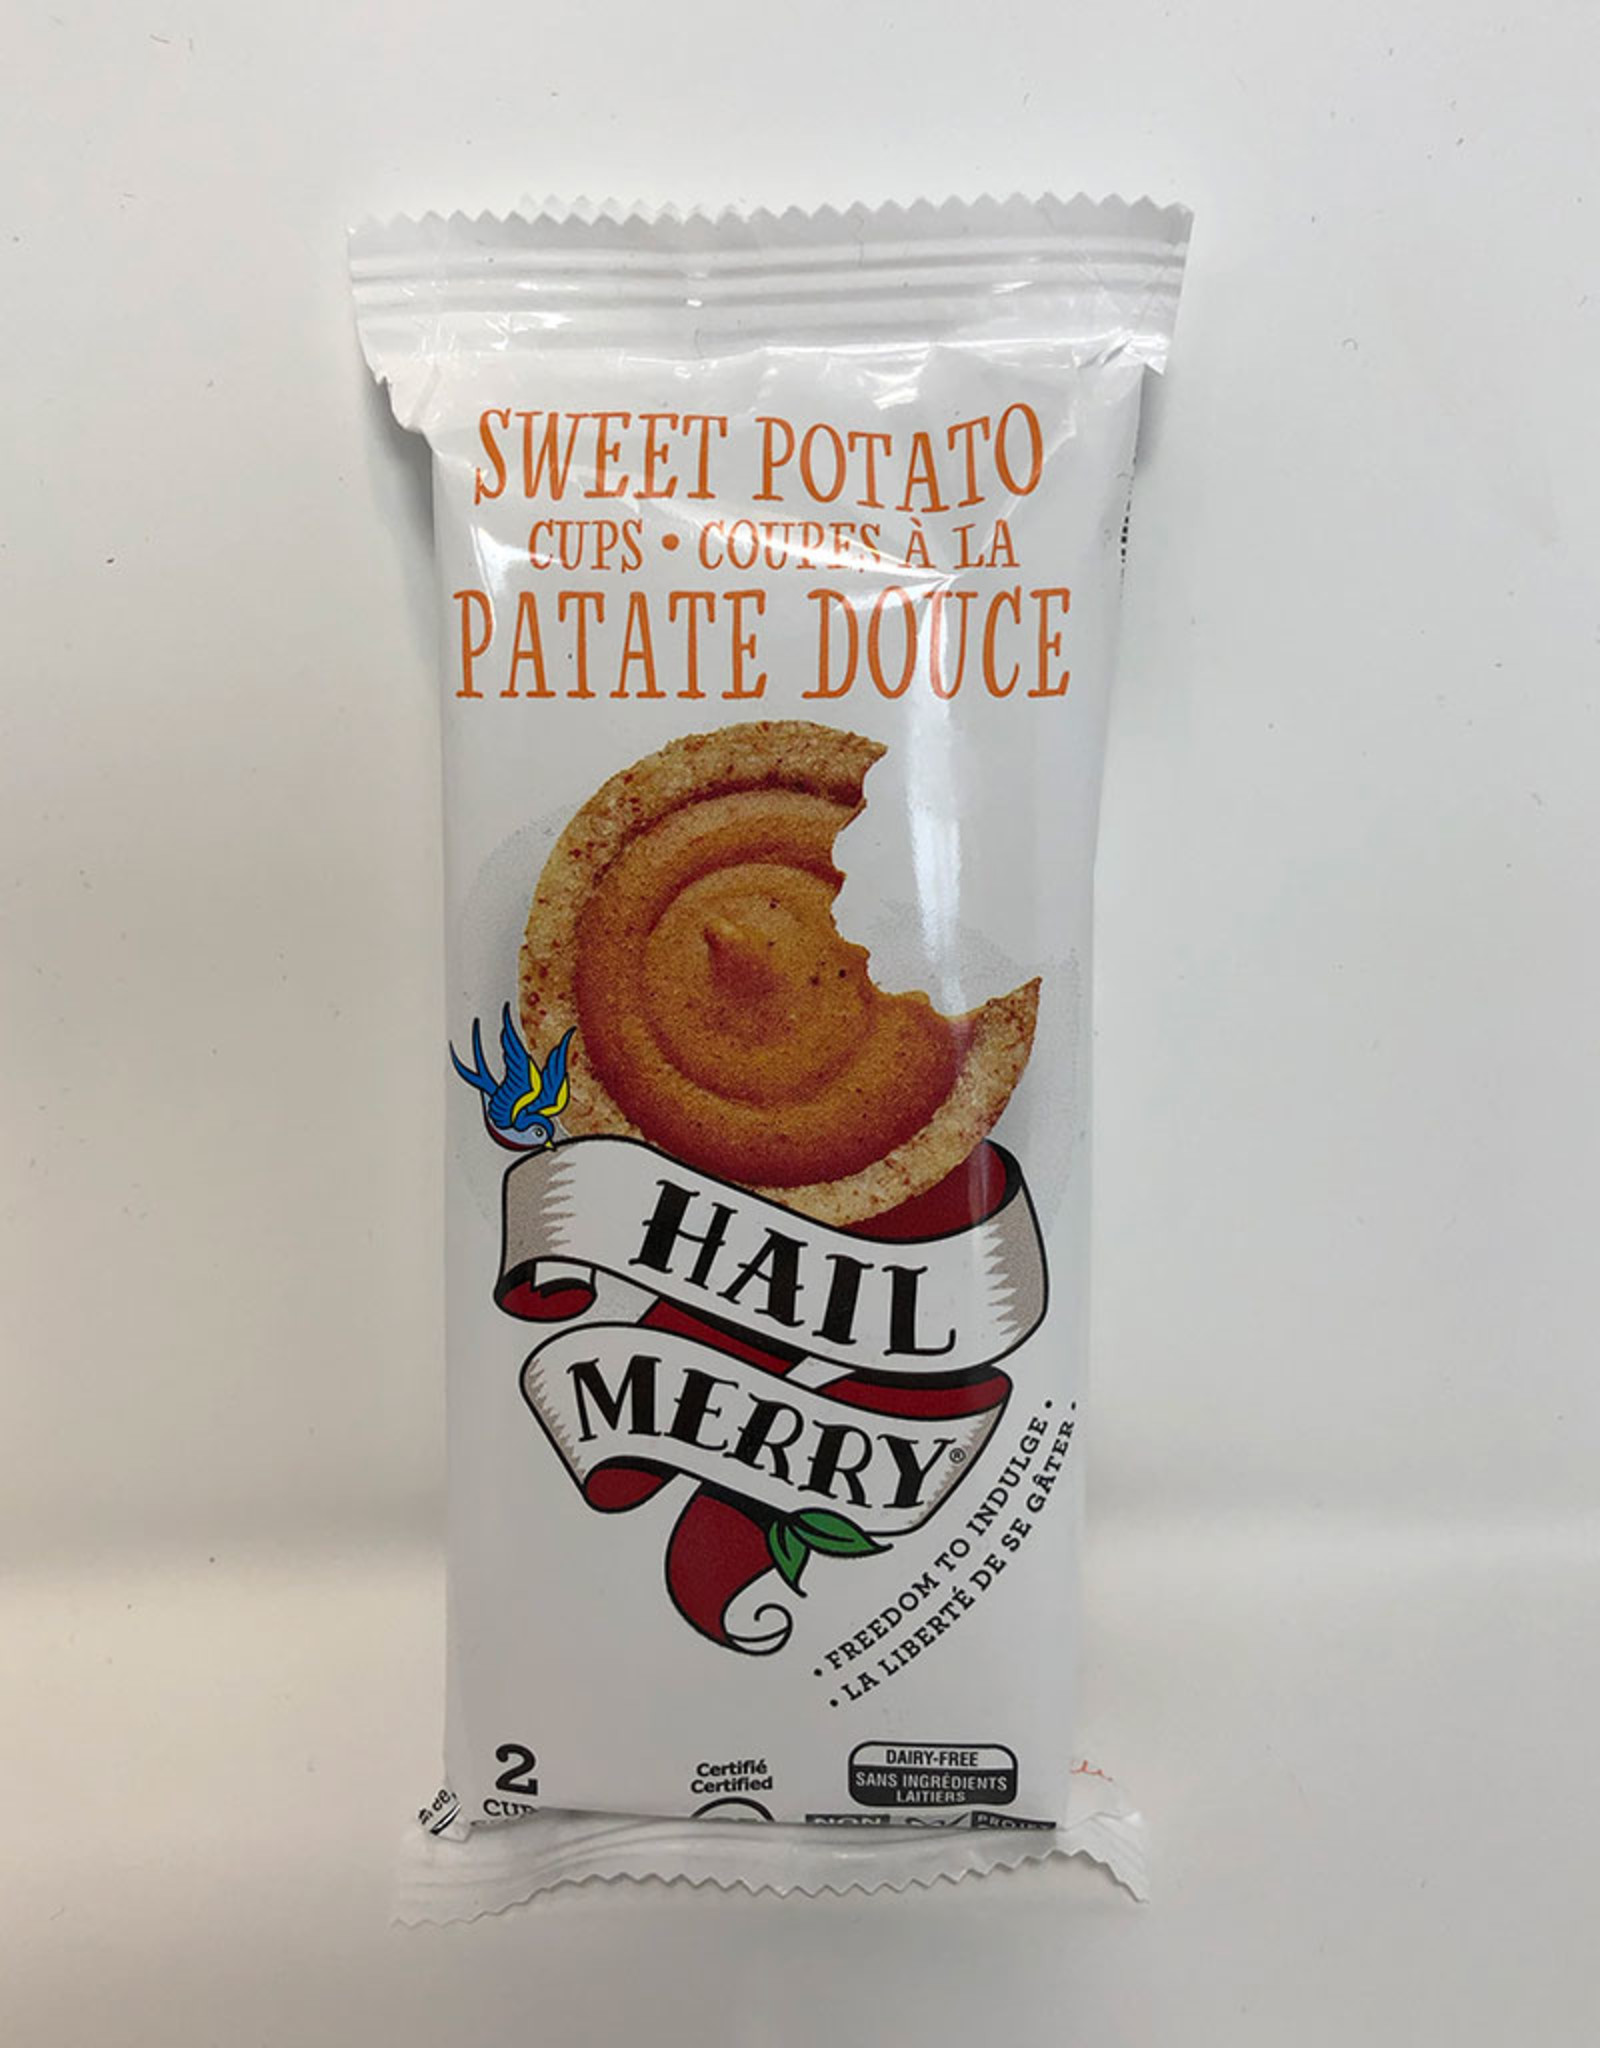 Hail Merry Hail Merry - Cups, Sweet Potato 2ct (44g)